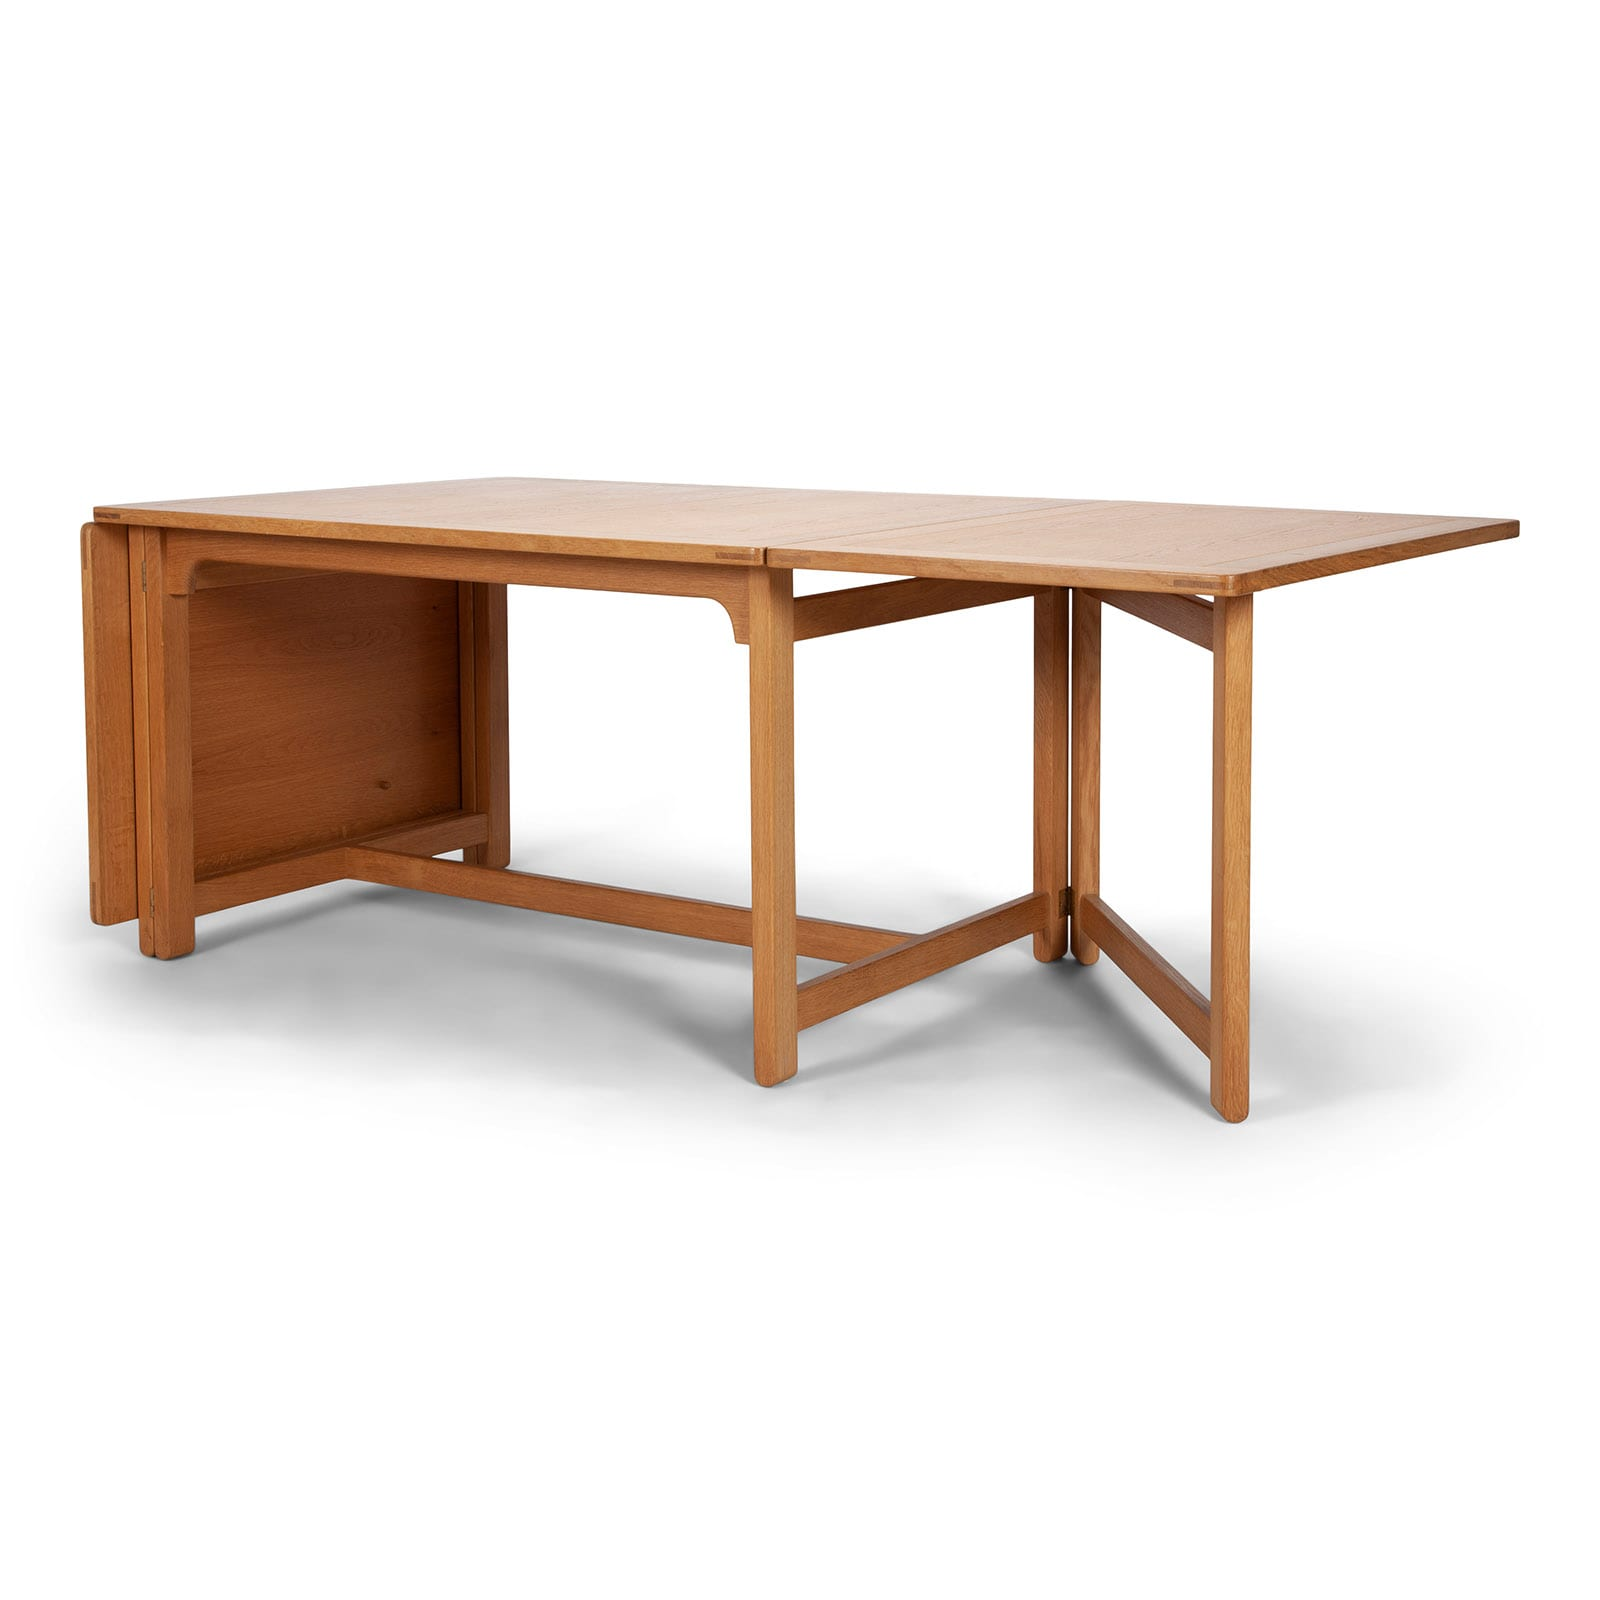 A library table